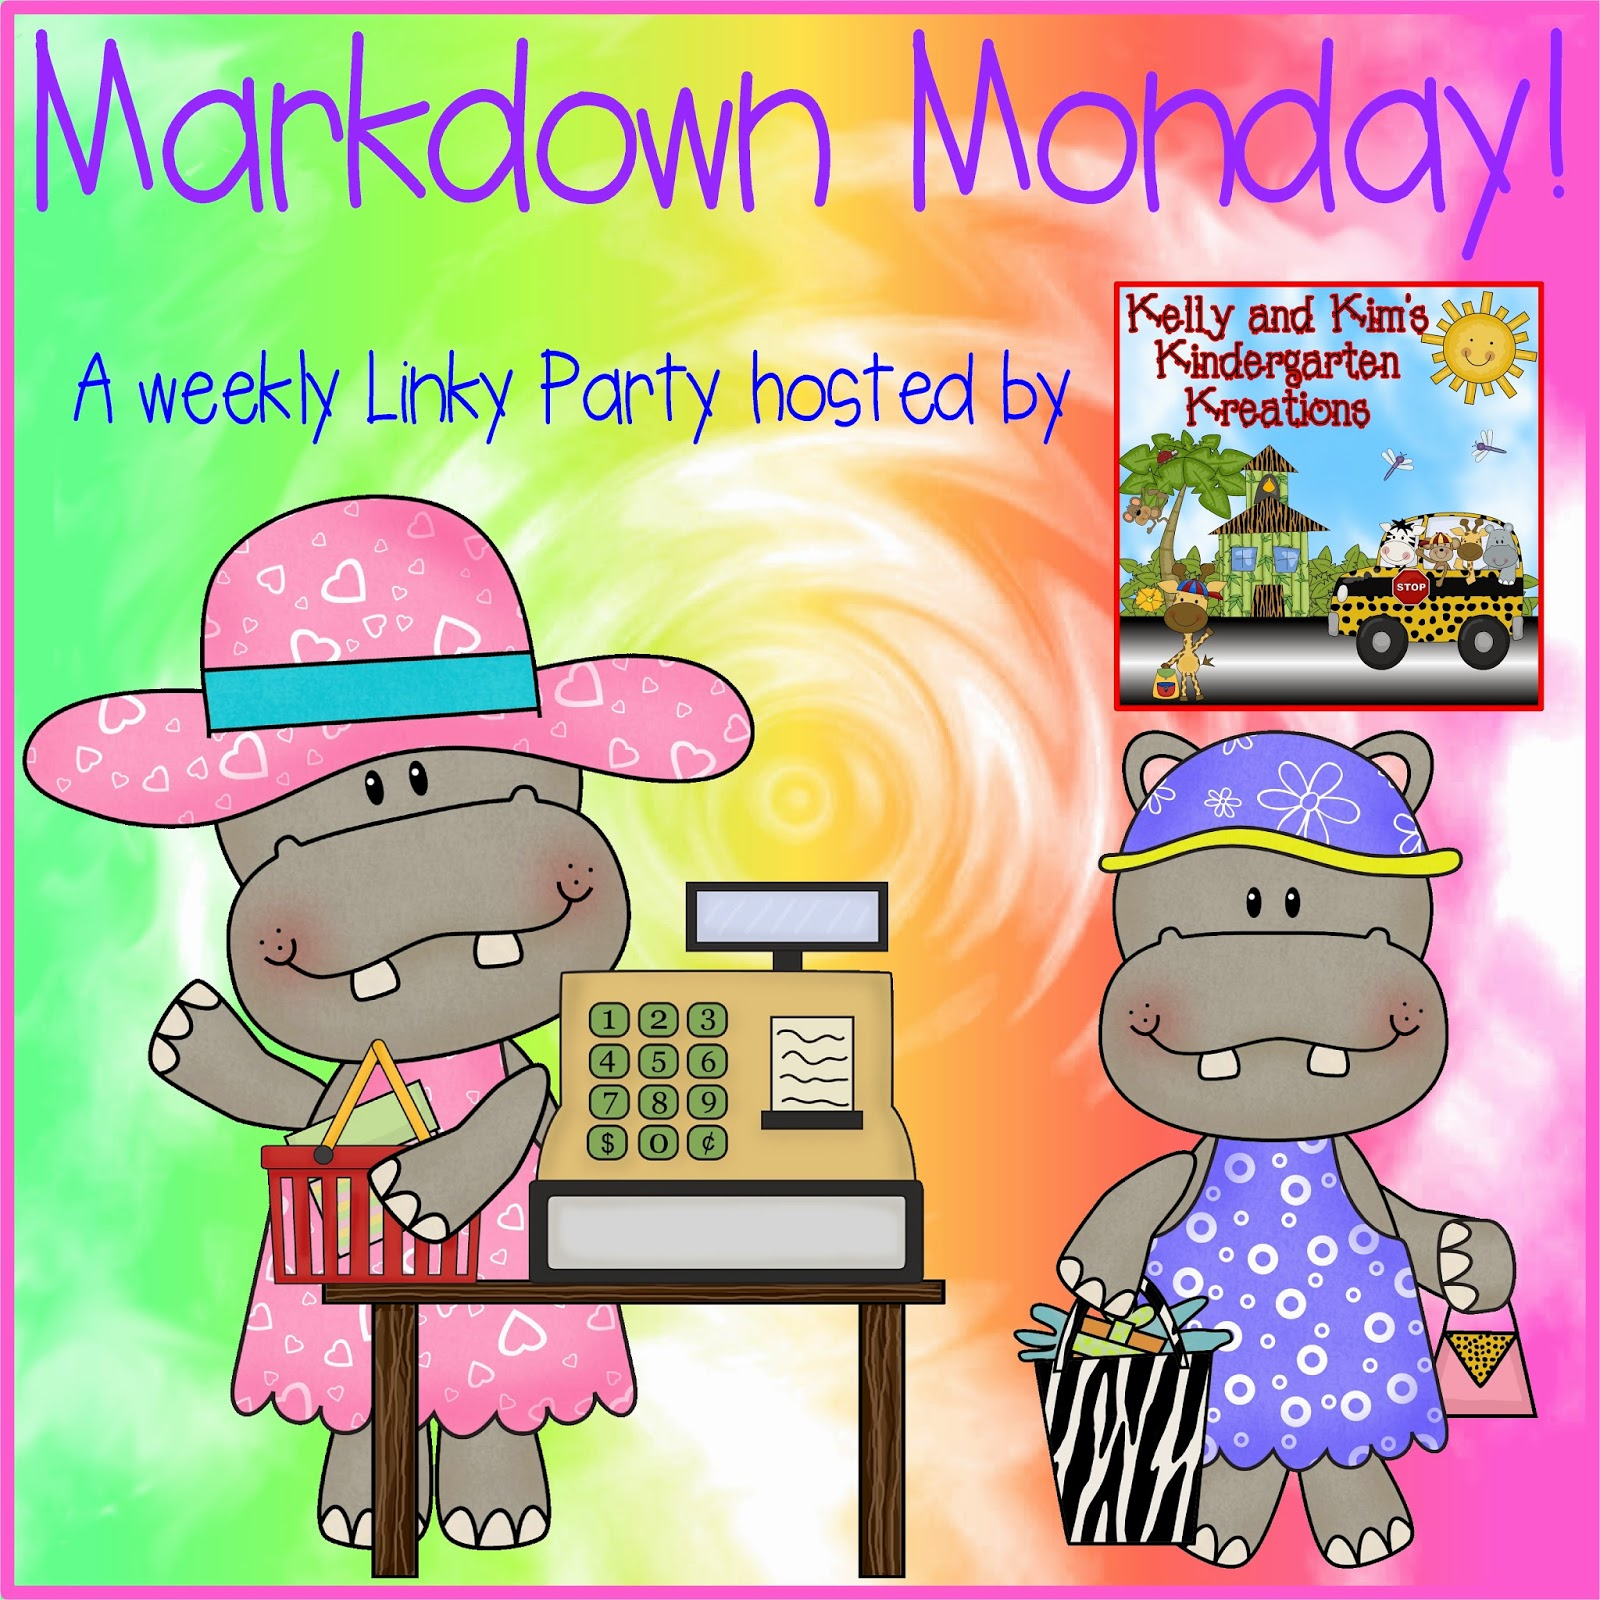 http://kellyandkimskindergarten.blogspot.com/2015/12/markdown-monday-linky-party-december.html